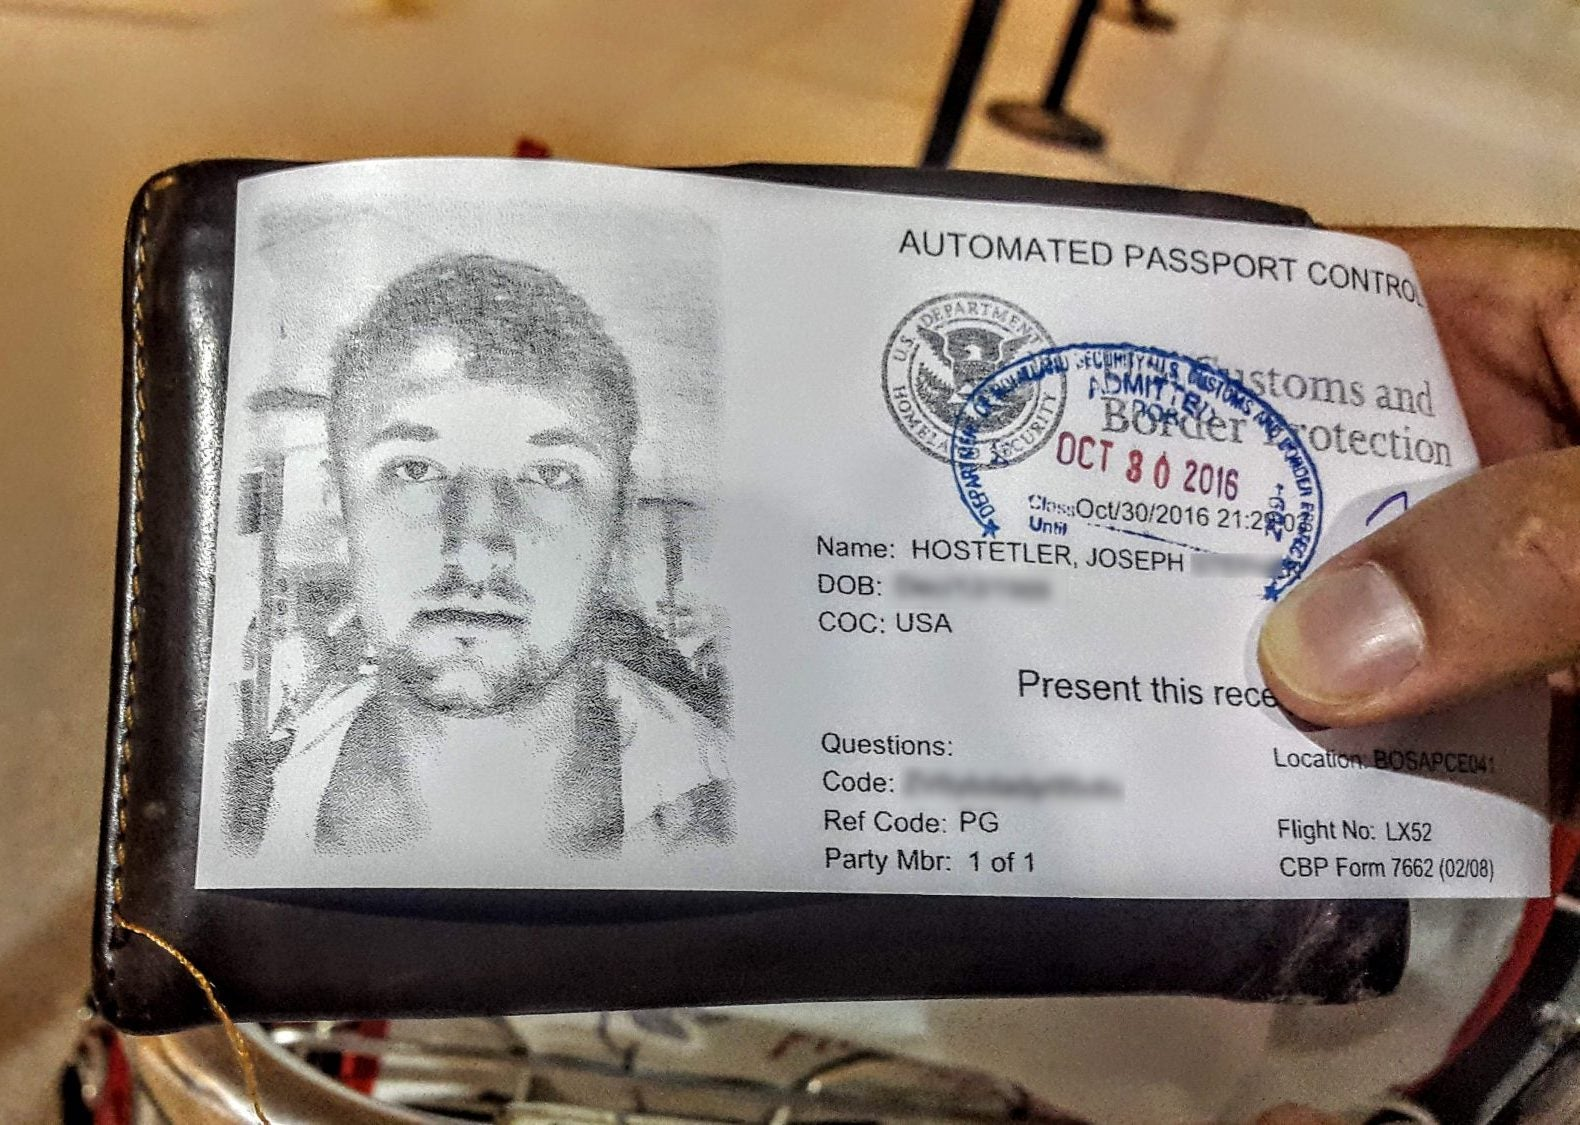 How Global Entry Saved Me $570 When I Arrived Late to the Airport